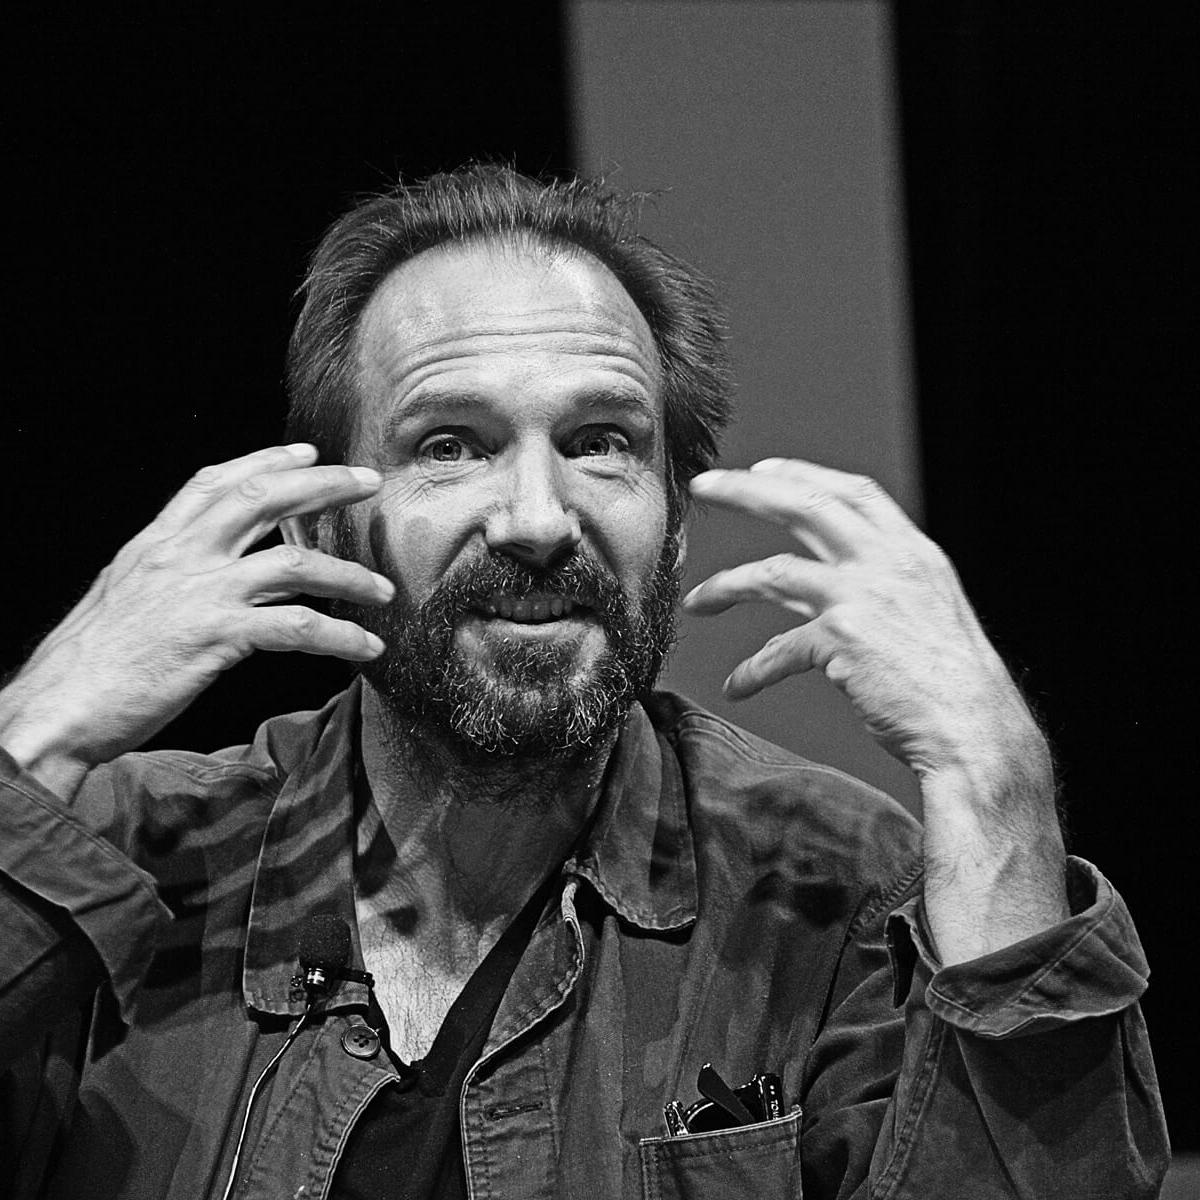 Photograph of English actor, film producer and director Ralph Fiennes by Julian Hanford